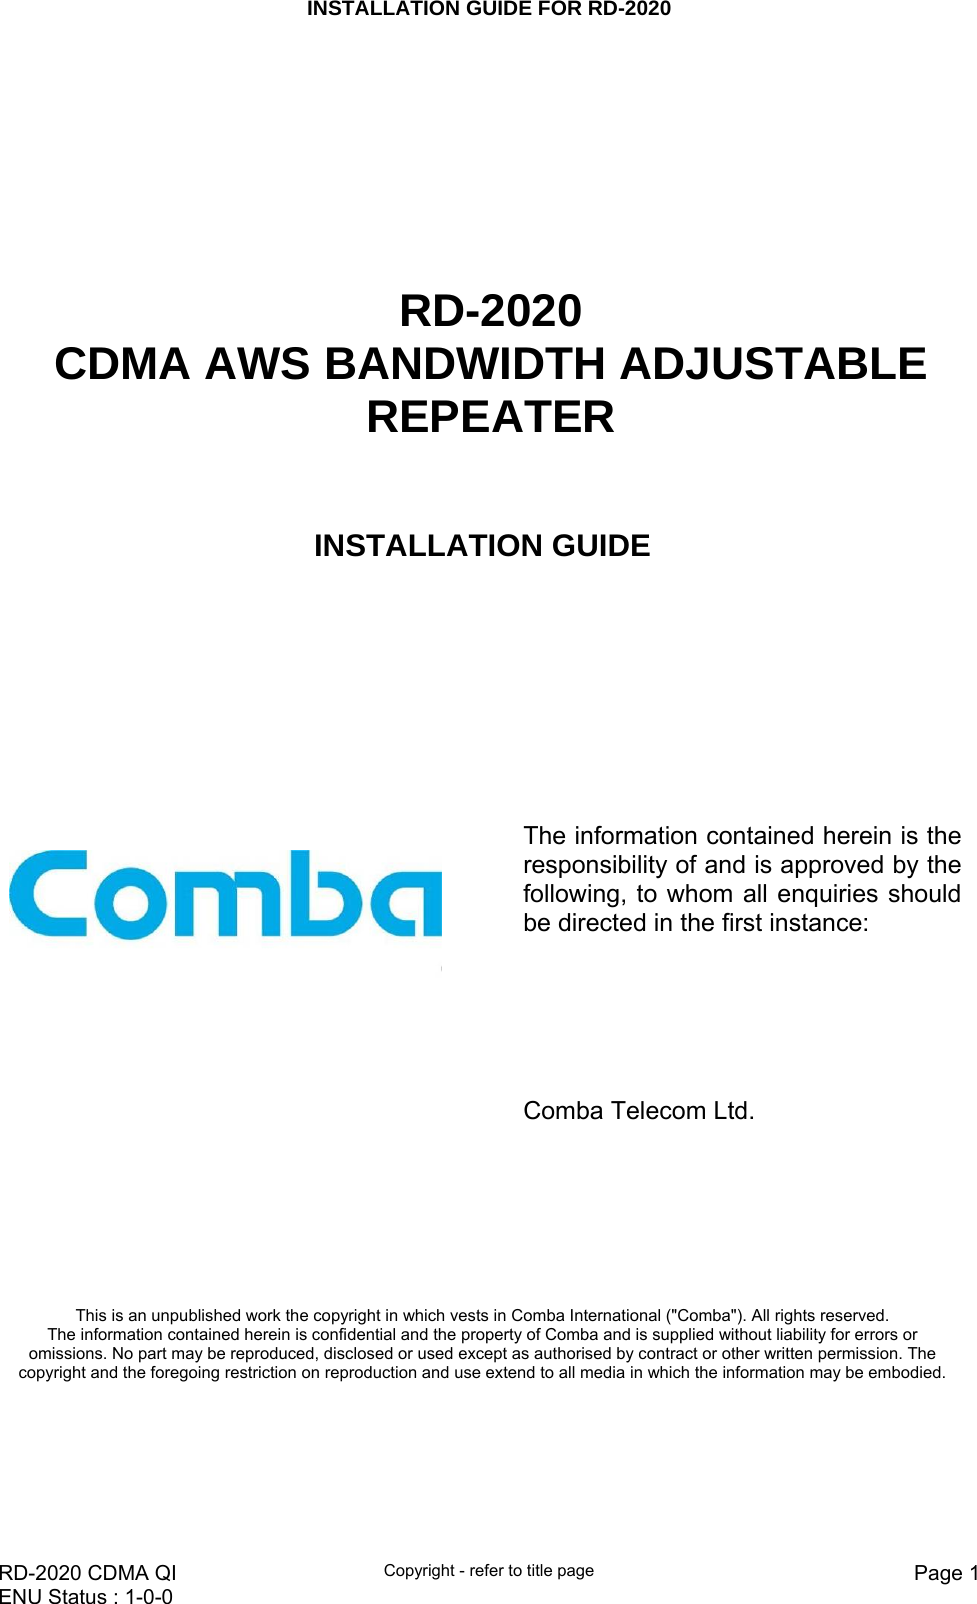 Comba Telecom RD-2020 RD2020 AWS Bandwidth Adjustable Repeater User